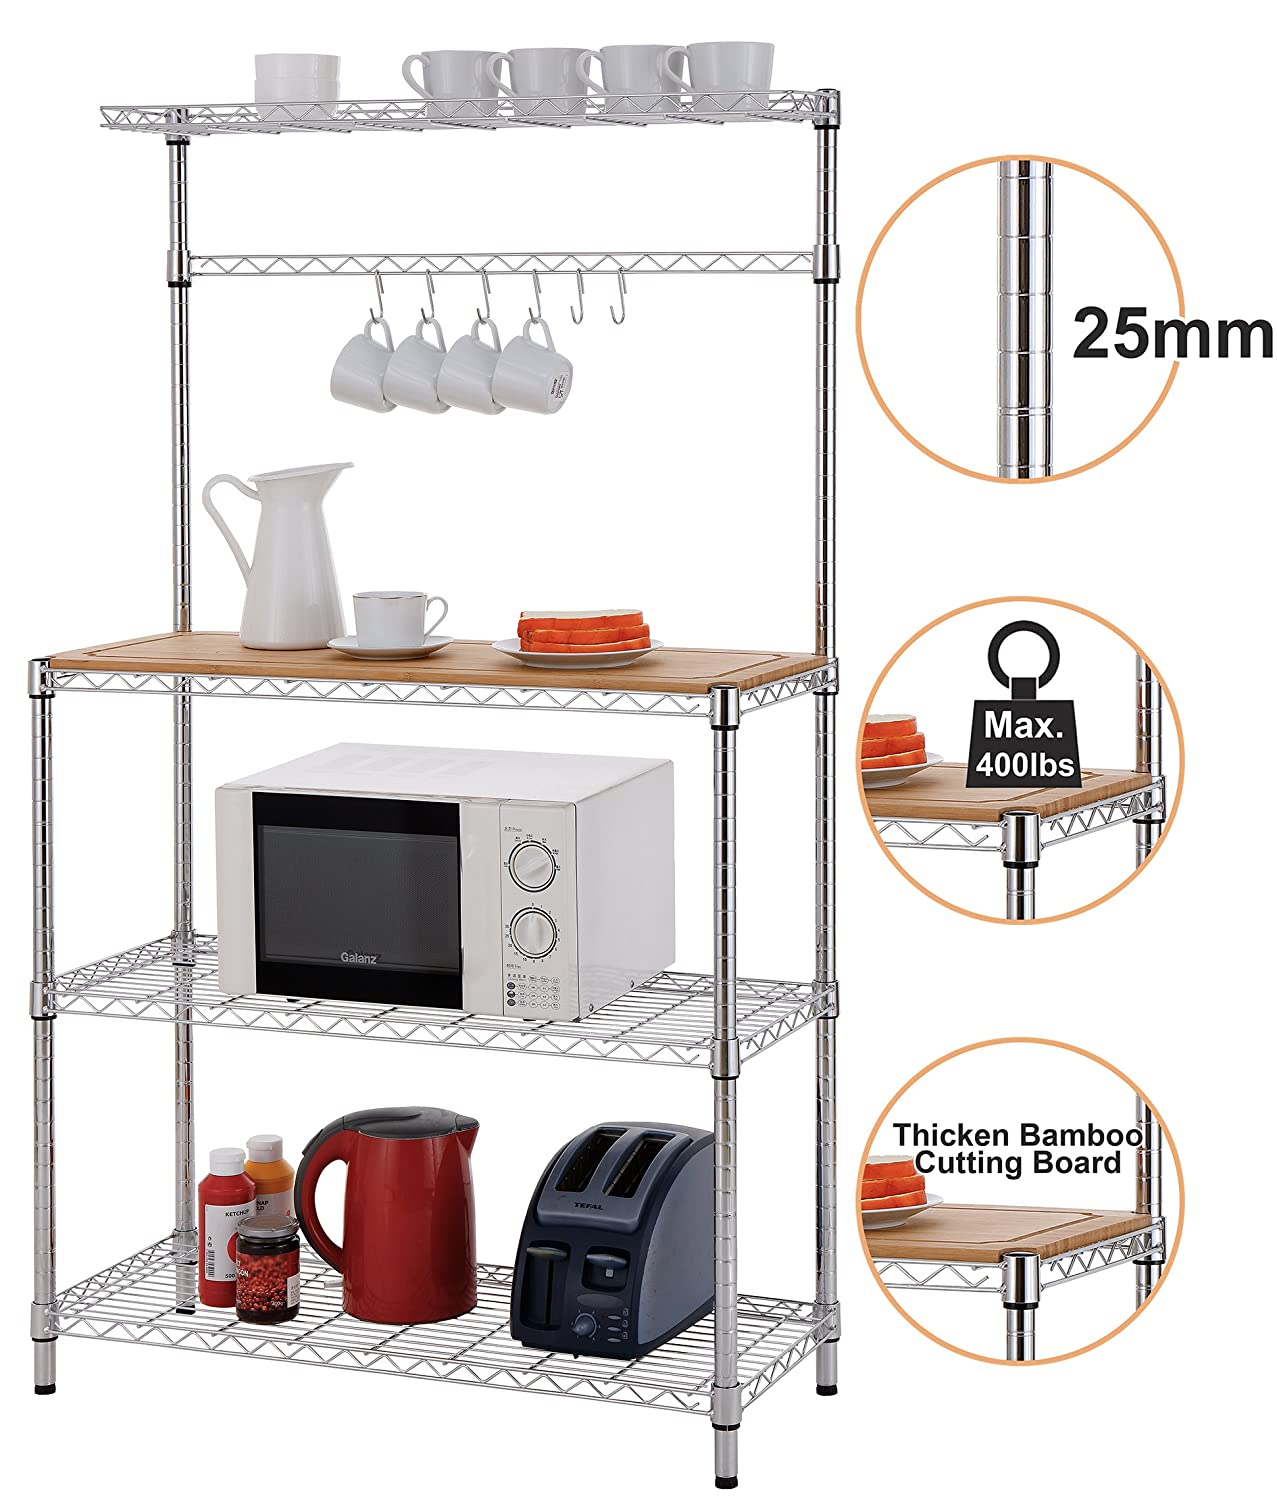 Finnhomy 14x36x61 4-Tiers Adjustable Kitchen Bakers Rack Kitchen Cart Microwave Stand with Chrome Shelves and Thicken Bamboo Cutting Board F20HK3MR7006